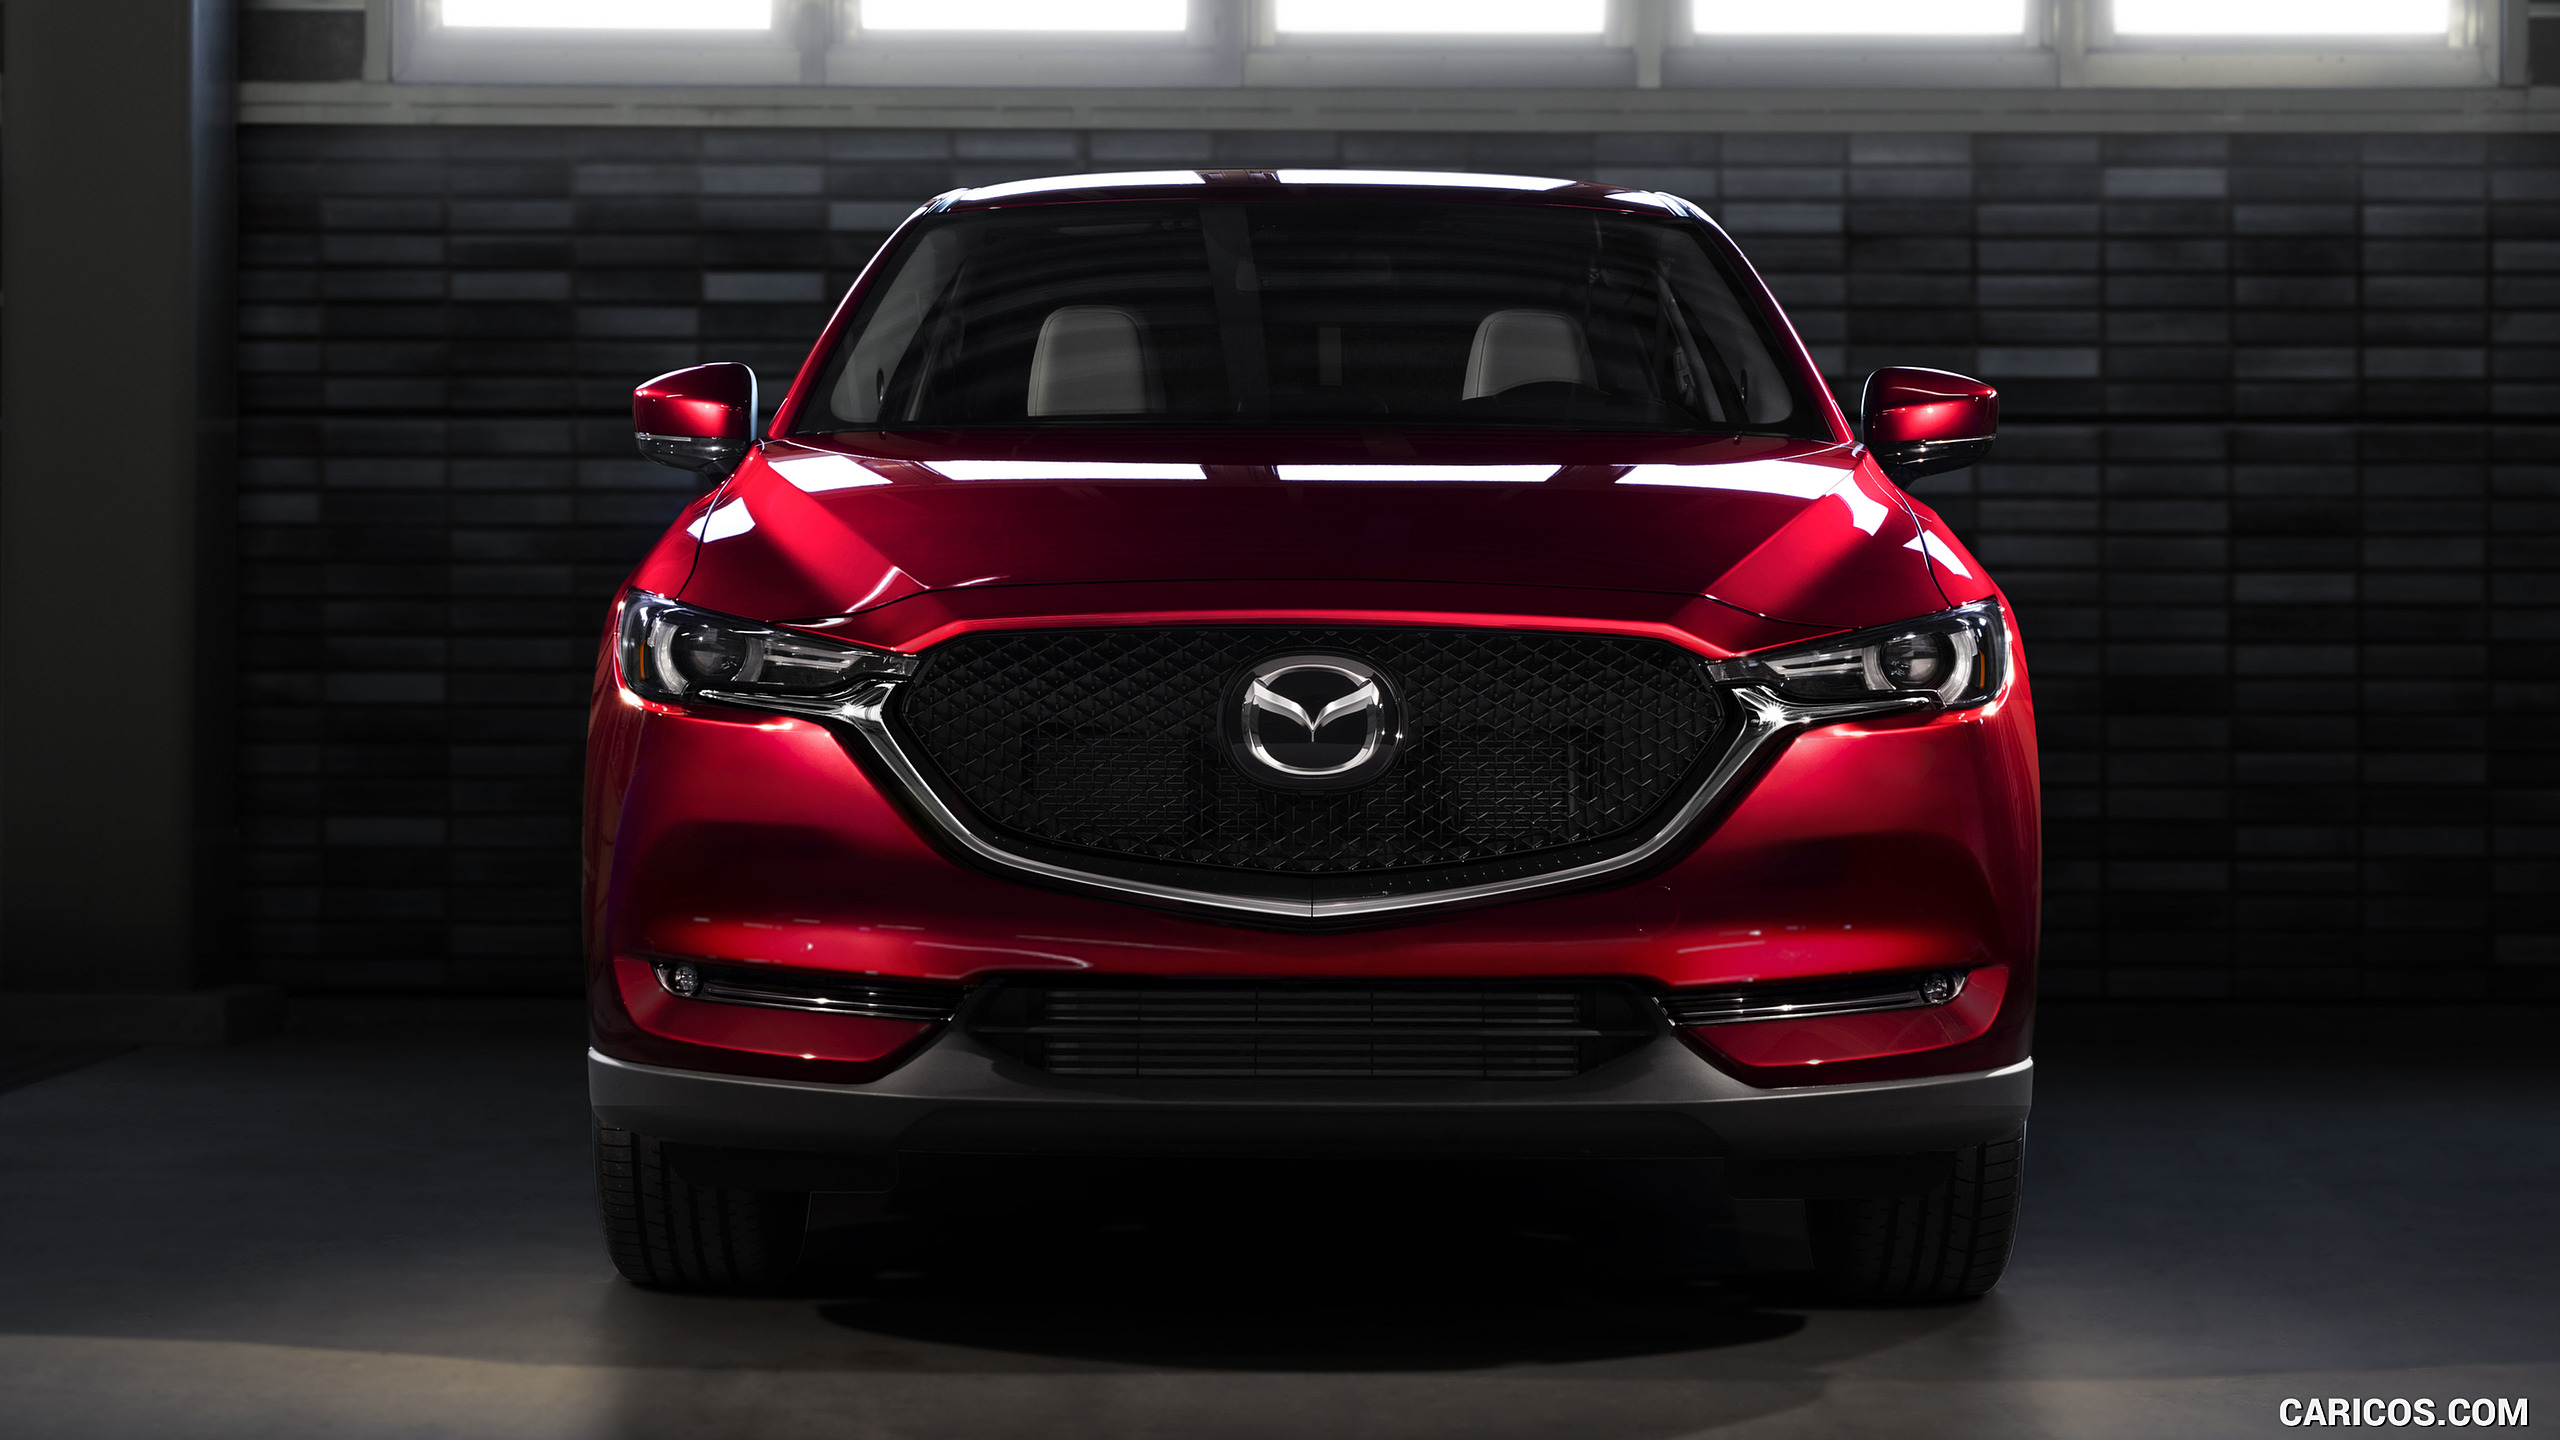 2560x1440 - Mazda CX-5 Wallpapers 6